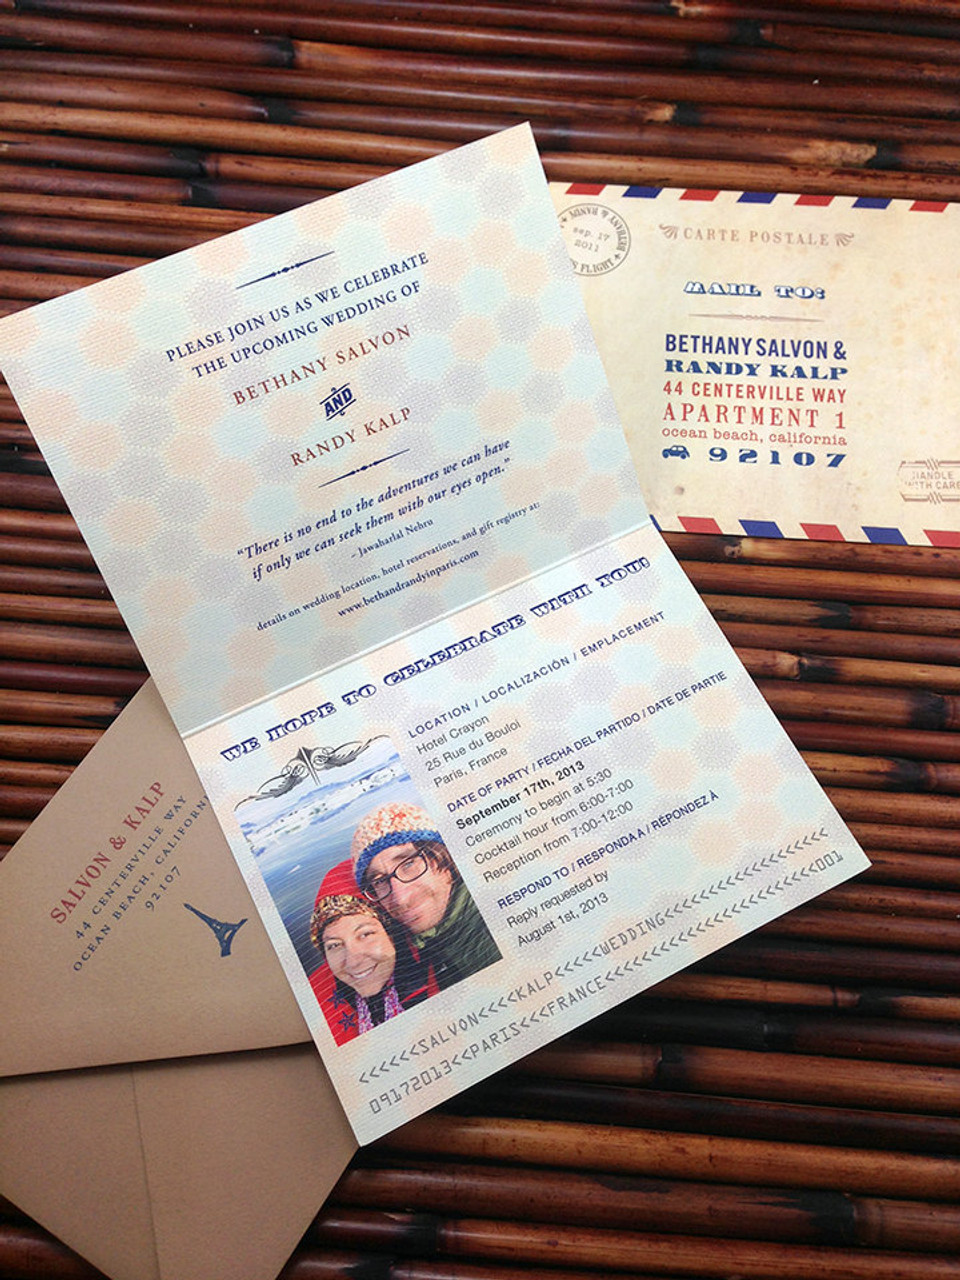 The Wanderlust Passport Invitation Is Perfect For Any Travel Themed